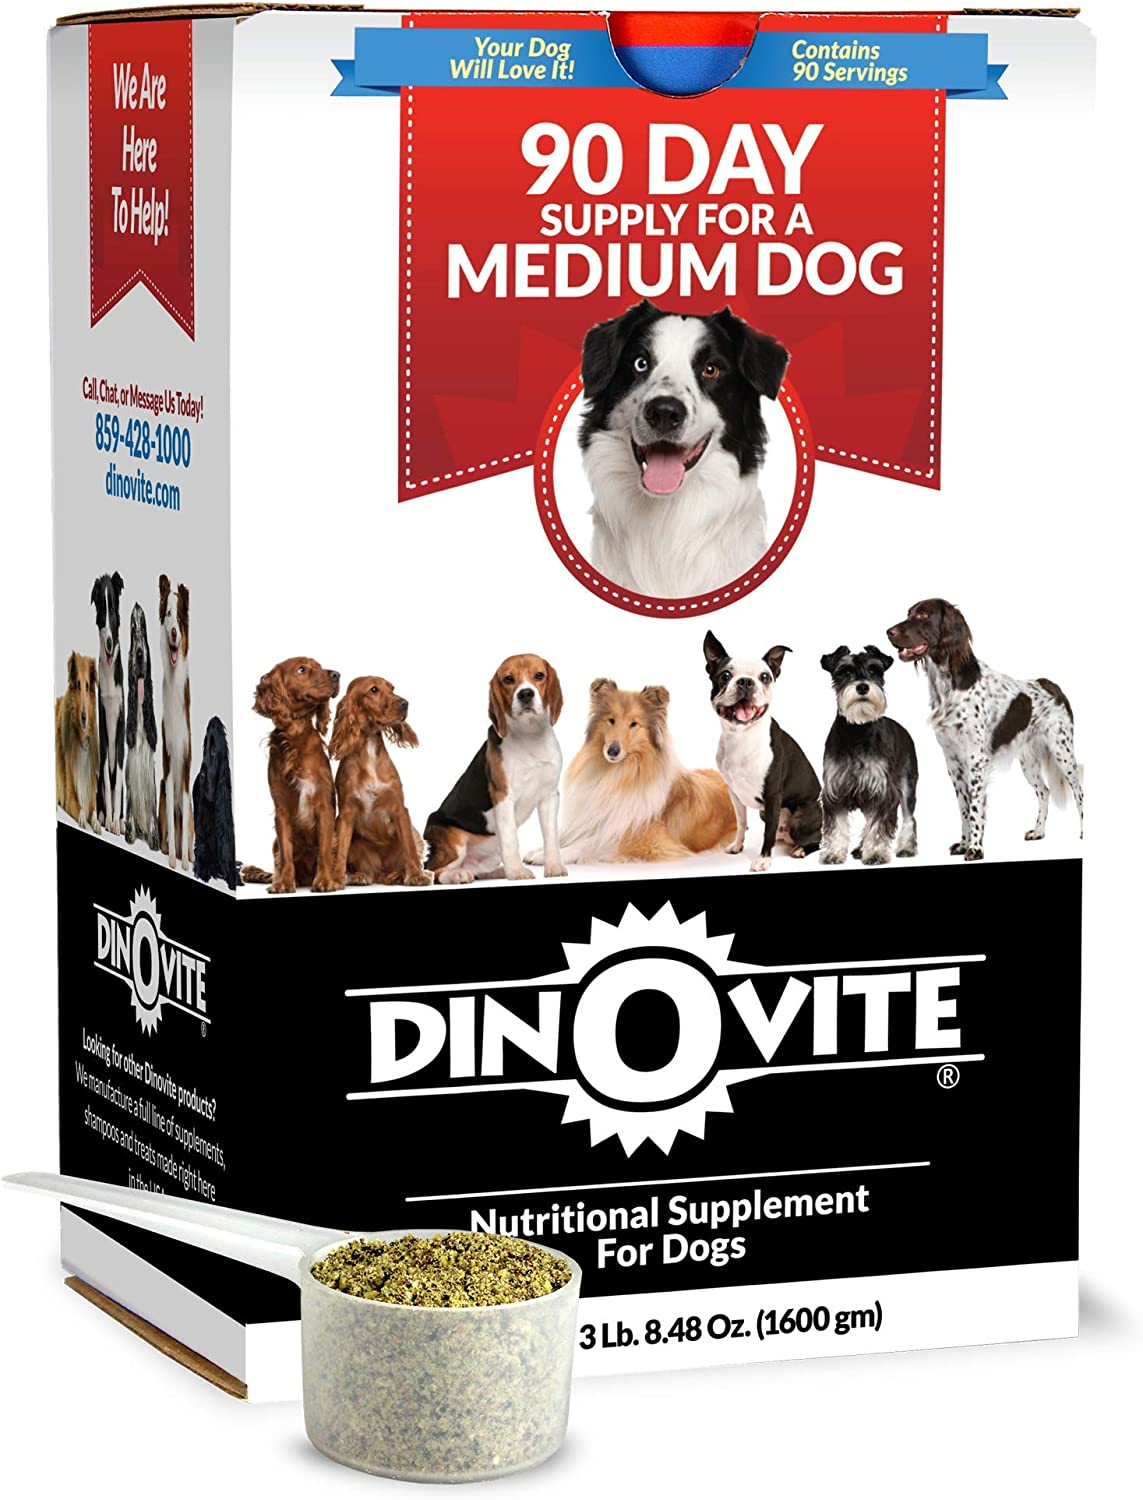 Dog Supplement - Immune + Digestive, Skin + Coat Support, Vitamins, Minerals, Omega 3, Enzymes, Probiotics. Reduces Shedding, Dry Skin, Itching, Stinking, Goopy Ears, Bald Spots, Seasonal Issues